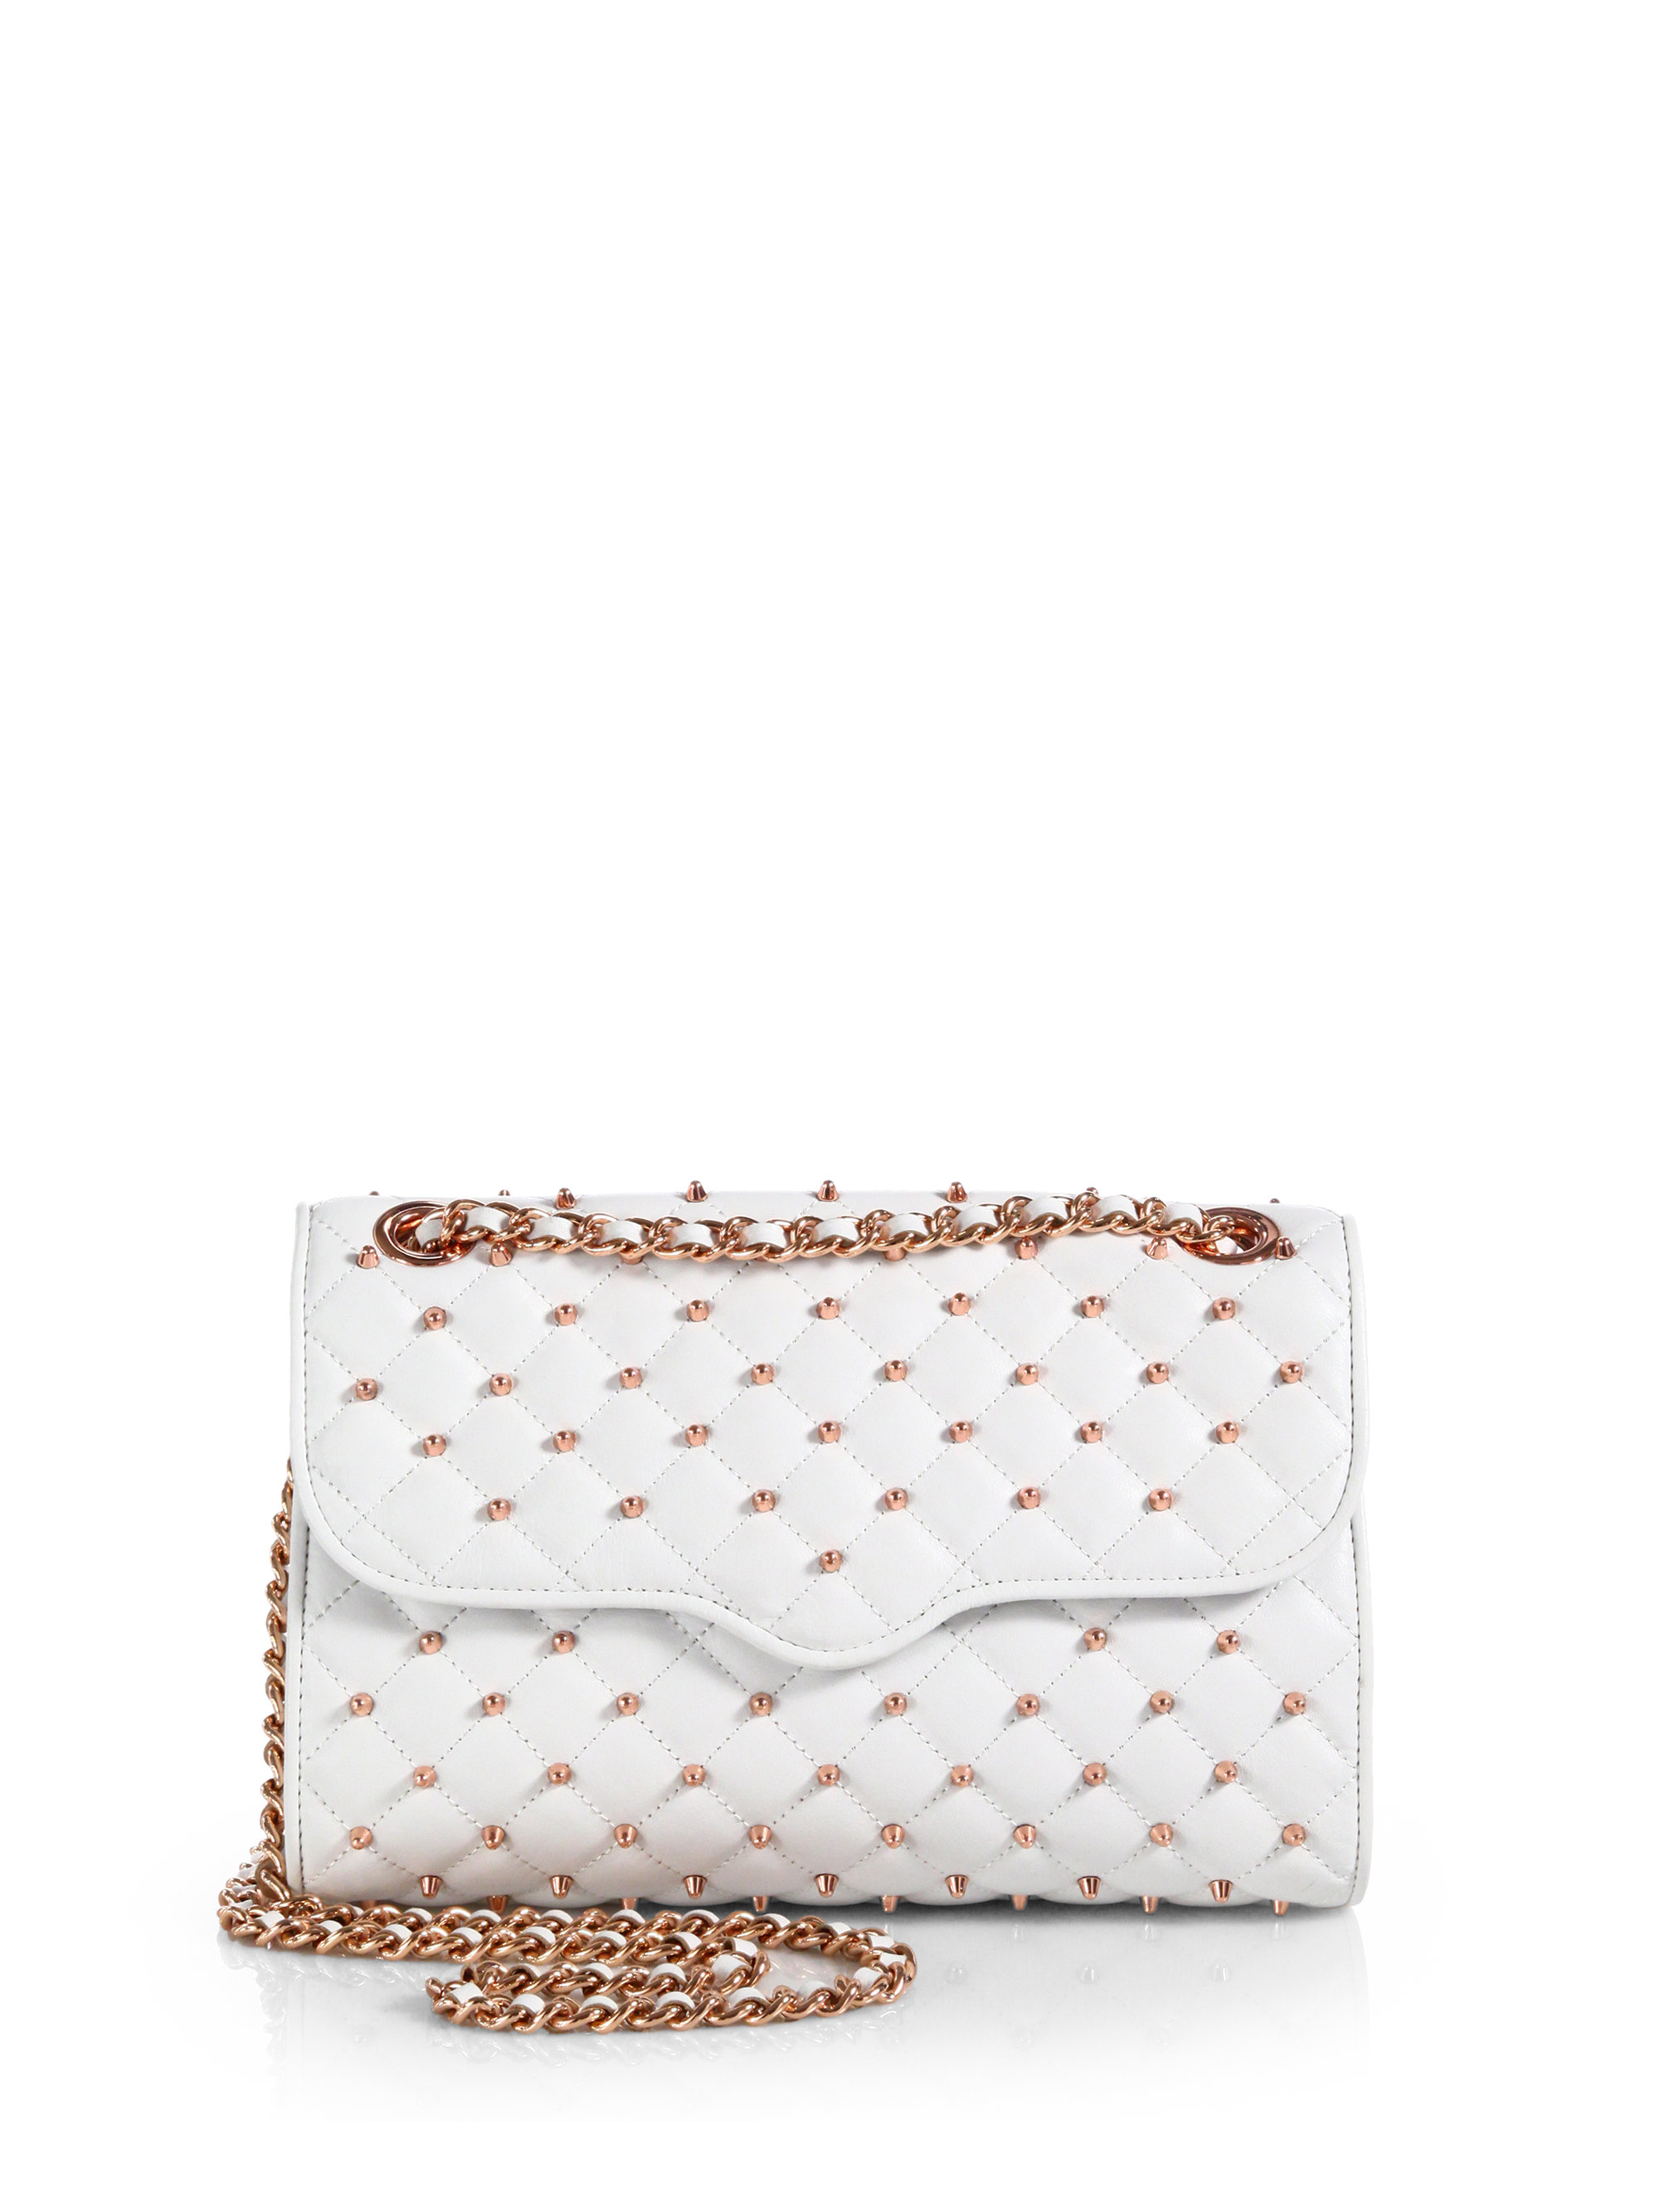 Rebecca Minkoff Affair Diamond Quilted Shoulder Bag In